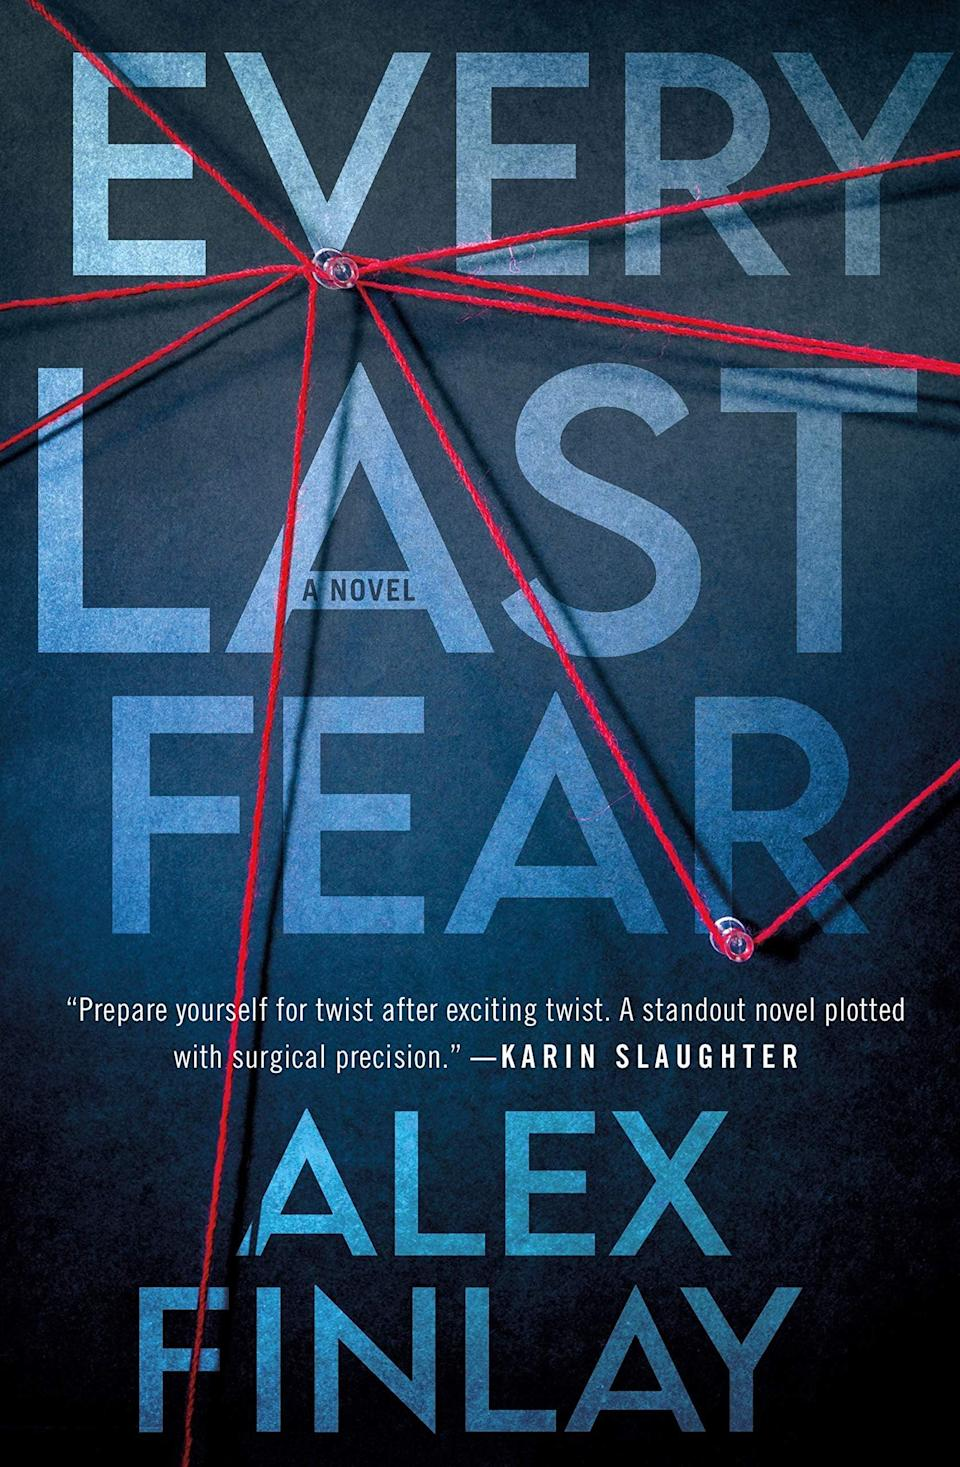 <p>True-crime buffs will devour <span><strong>Every Last Fear</strong></span> by Alex Finlay. Matt Pine's family was made infamous by a true-crime documentary, so when they all end up dead due to an apparent gas leak, the FBI is understandably suspicious. That leaves Matt to return home to bury his family and unravel the dark mystery surrounding their deaths. </p> <p><em>Out March 2</em></p>